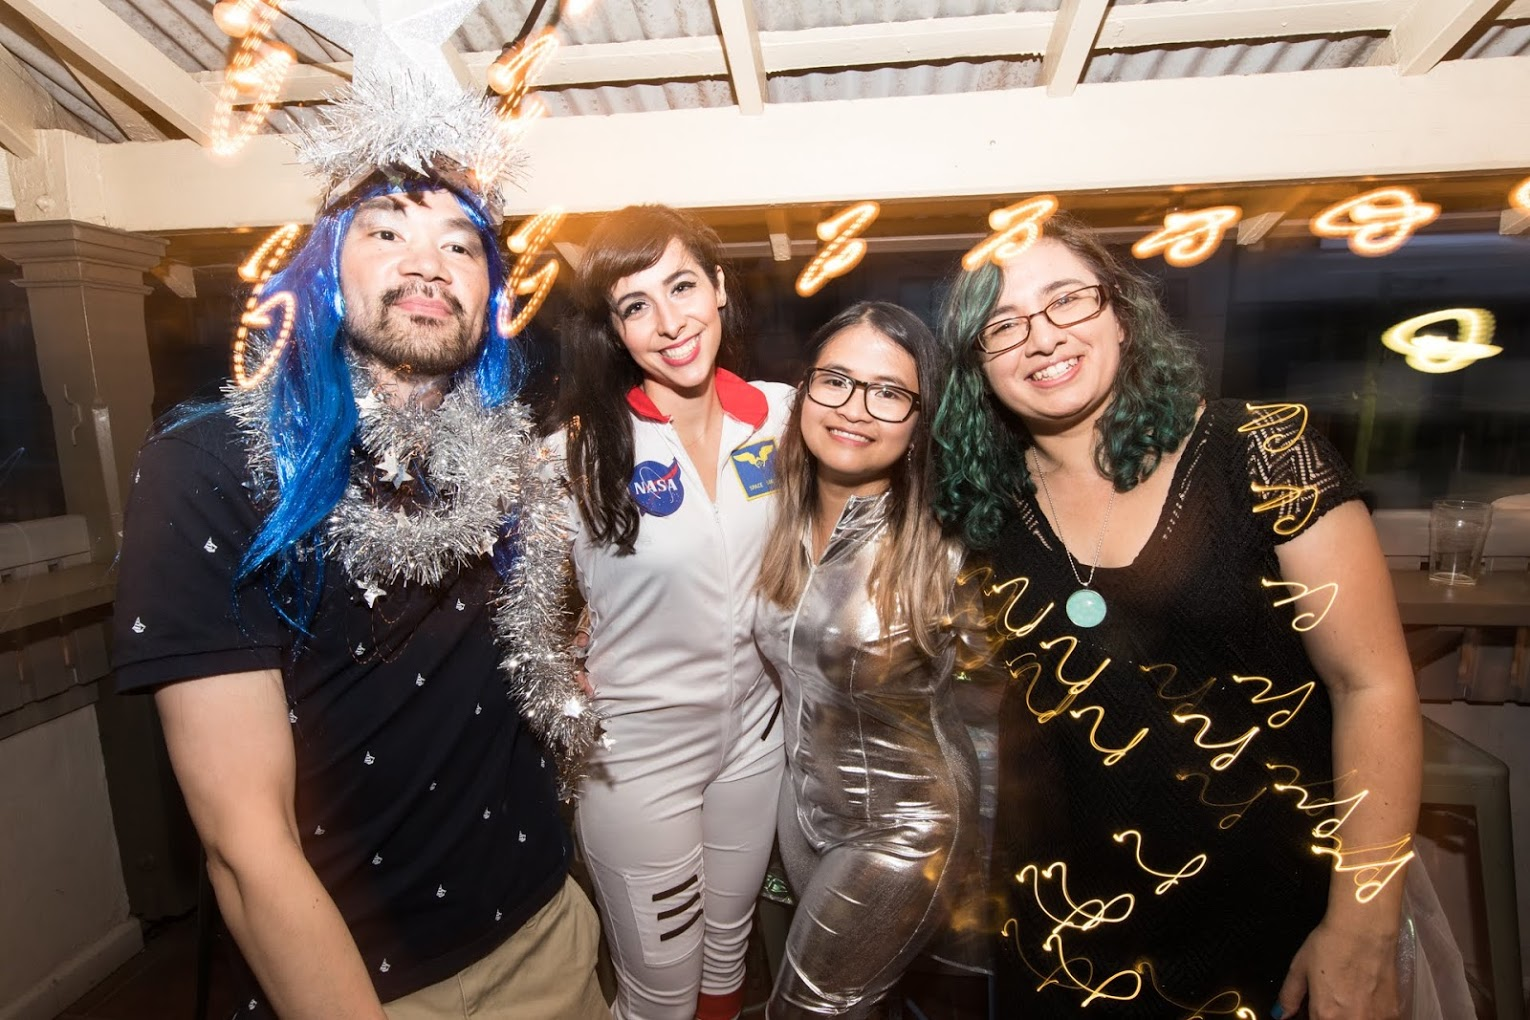 20171211_Flying Bark_Christmas Party_Photographer_Daniele Massacci_Web-6507.jpg